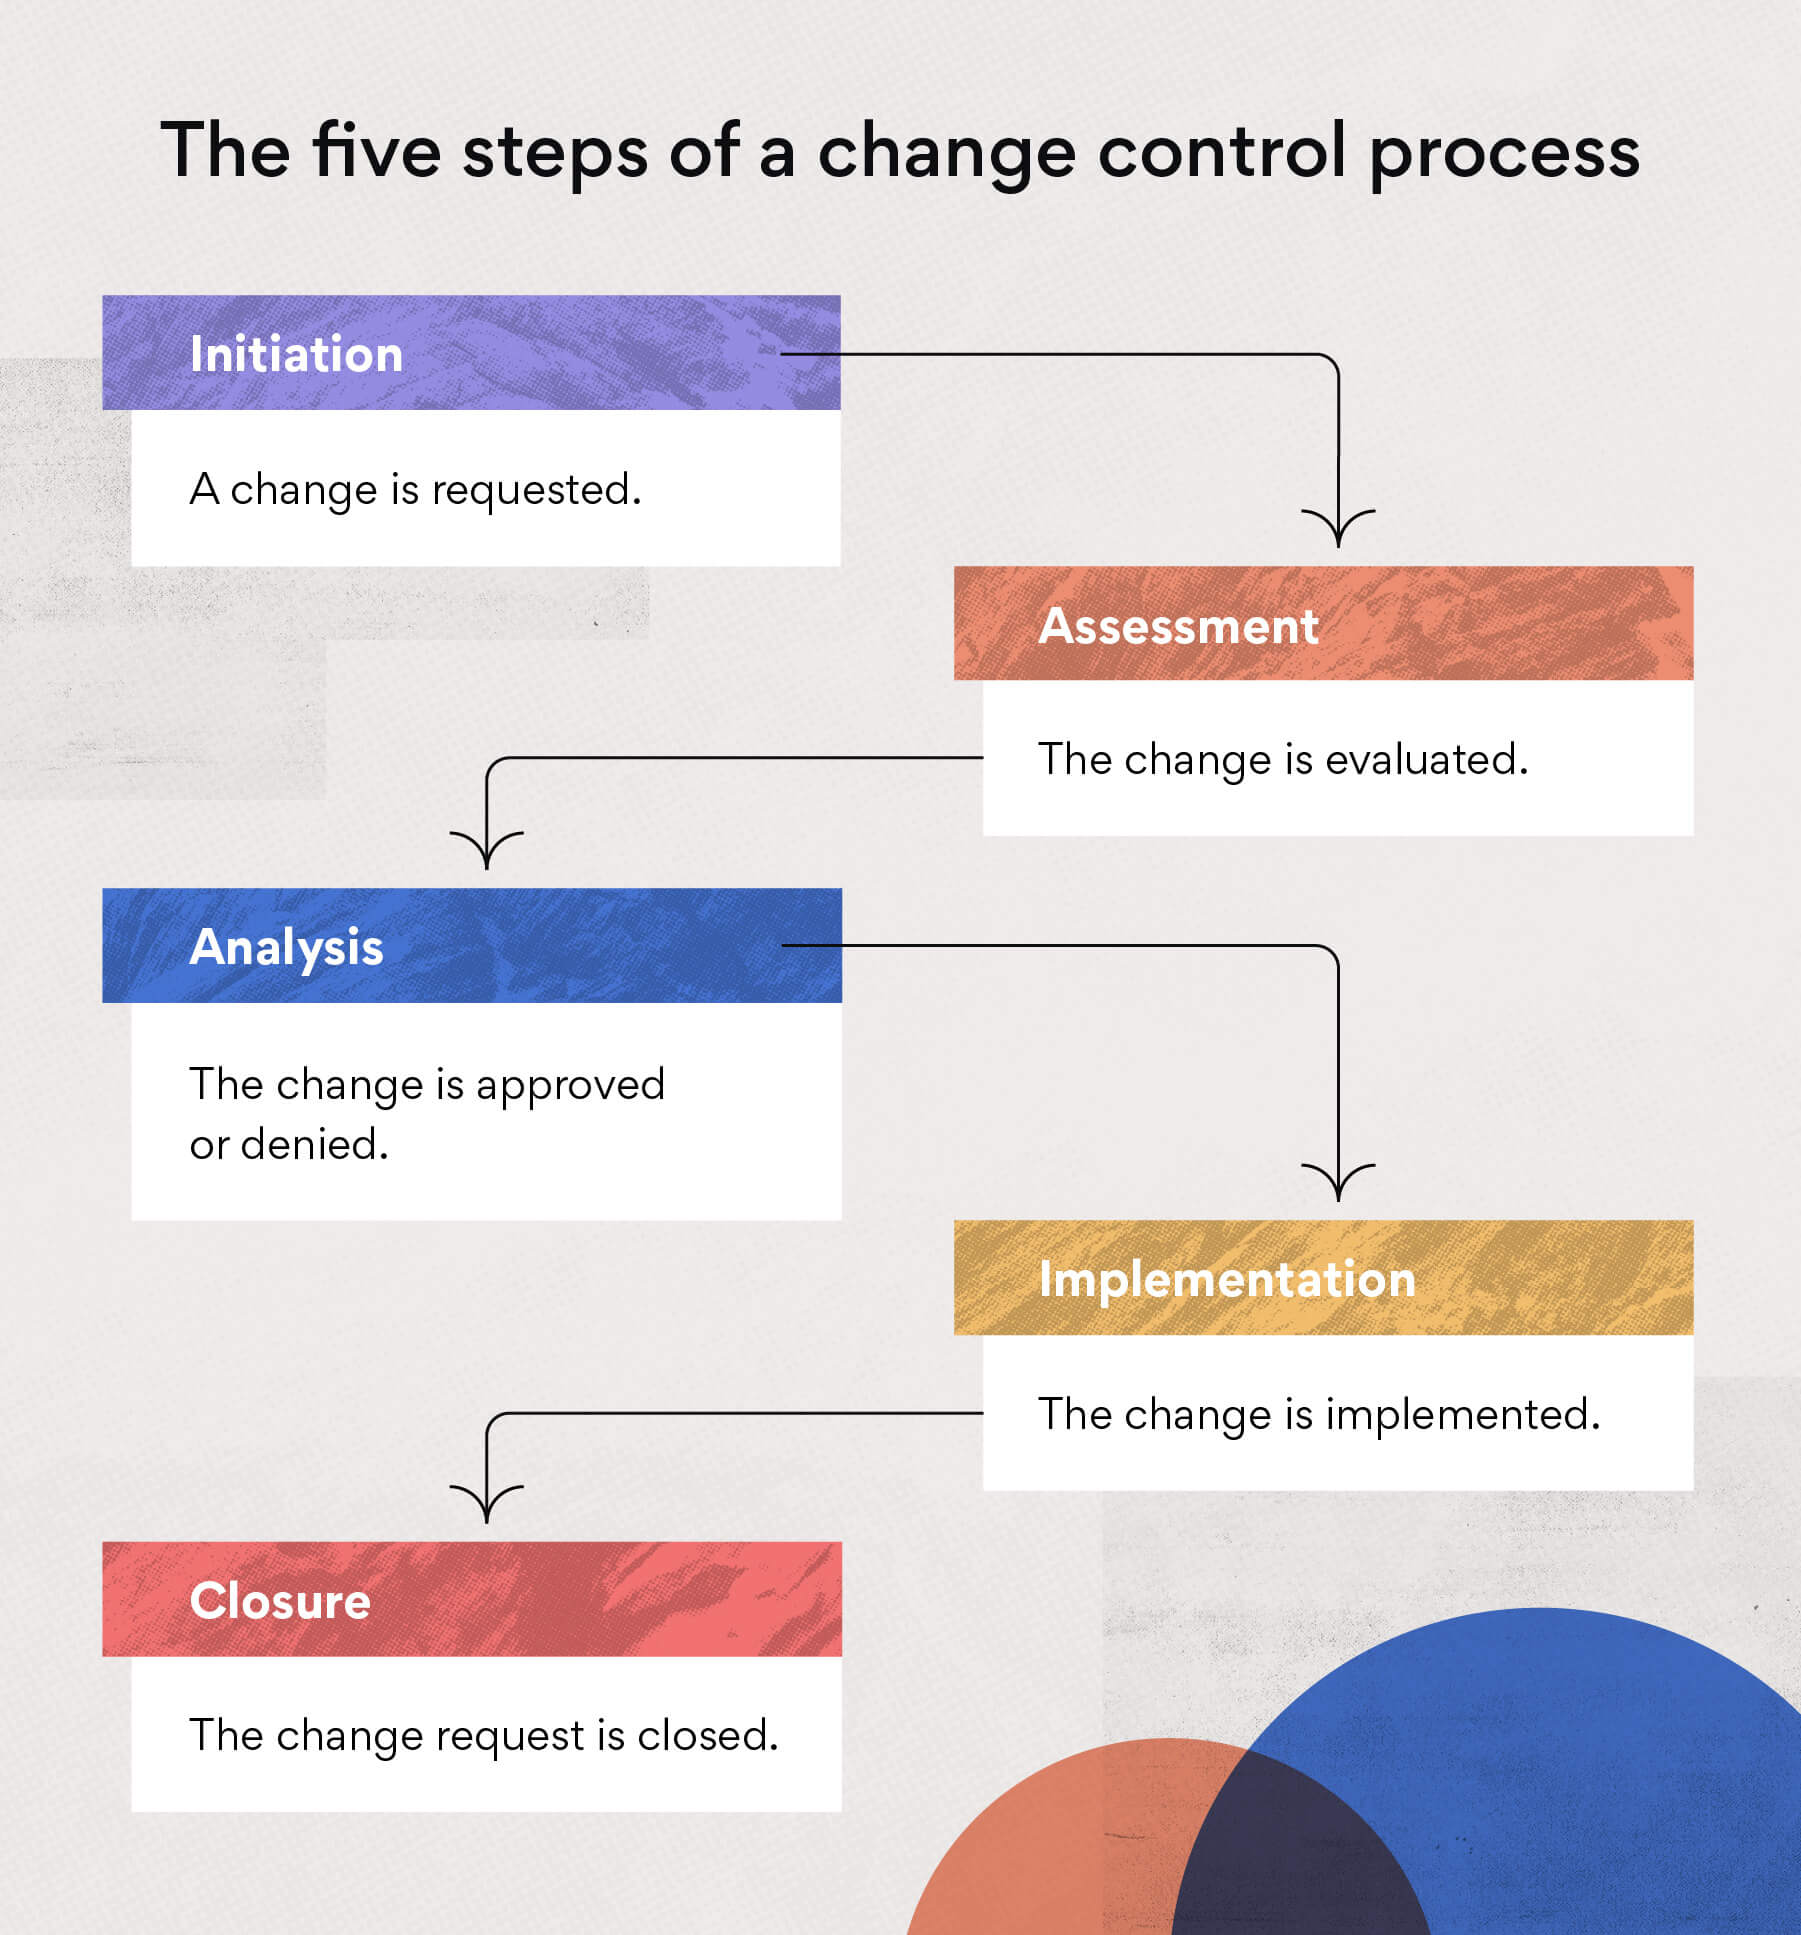 The five steps of a change control process